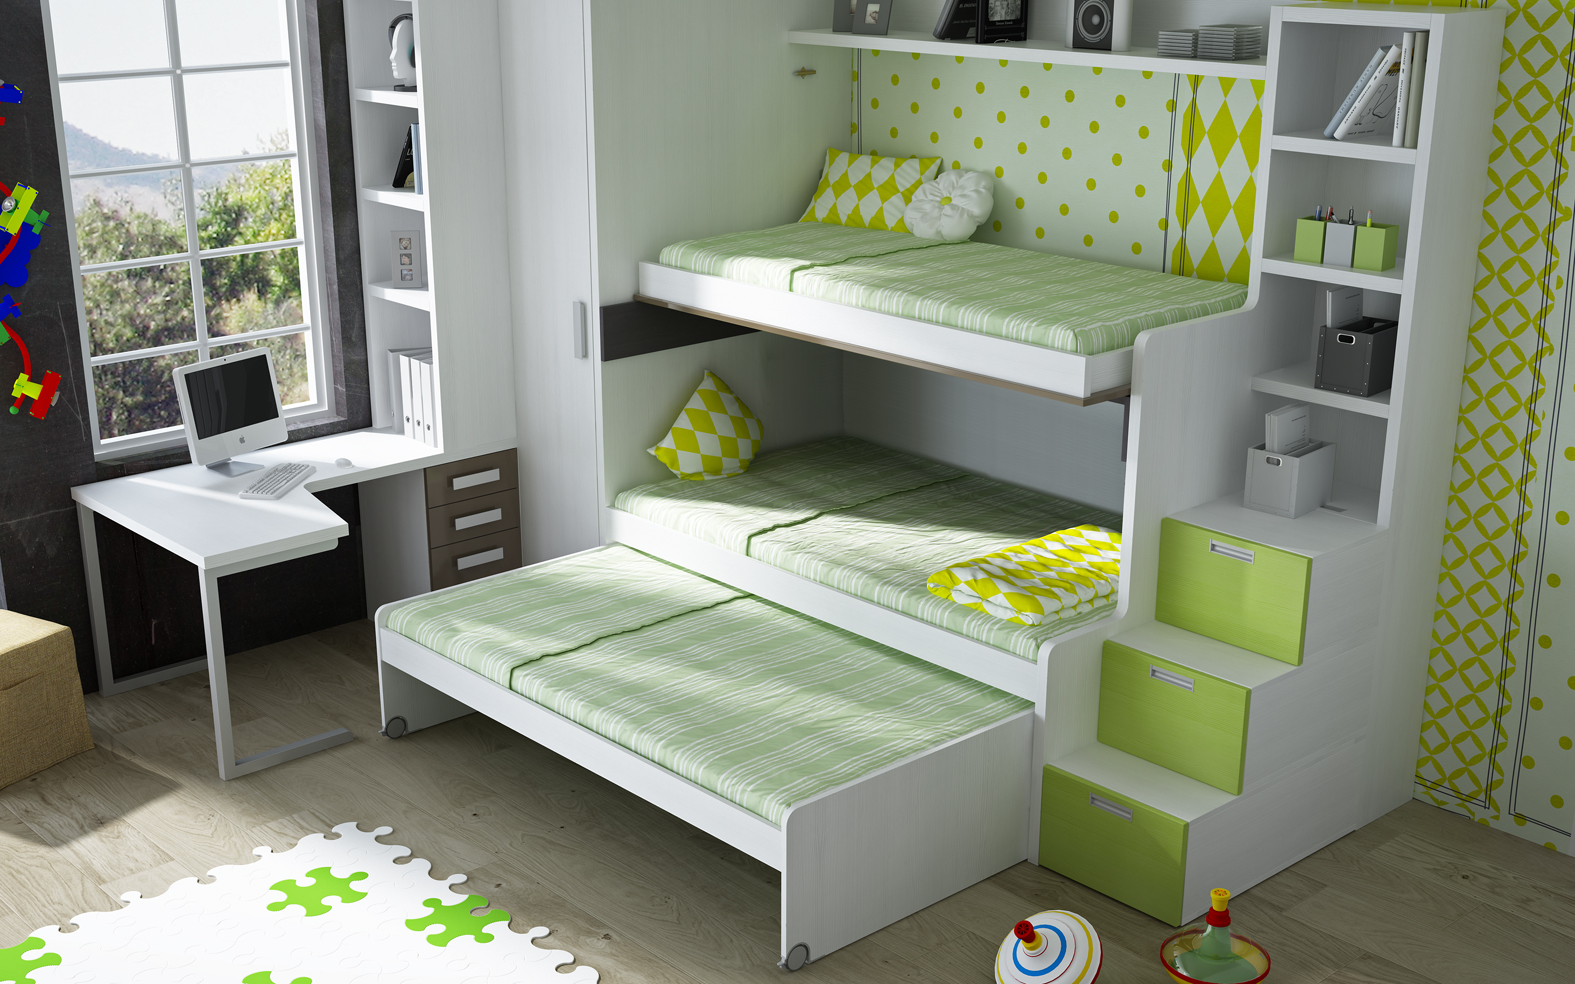 Muebles infantiles madrid muebles infantiles madrid with for Escritorios baratos madrid